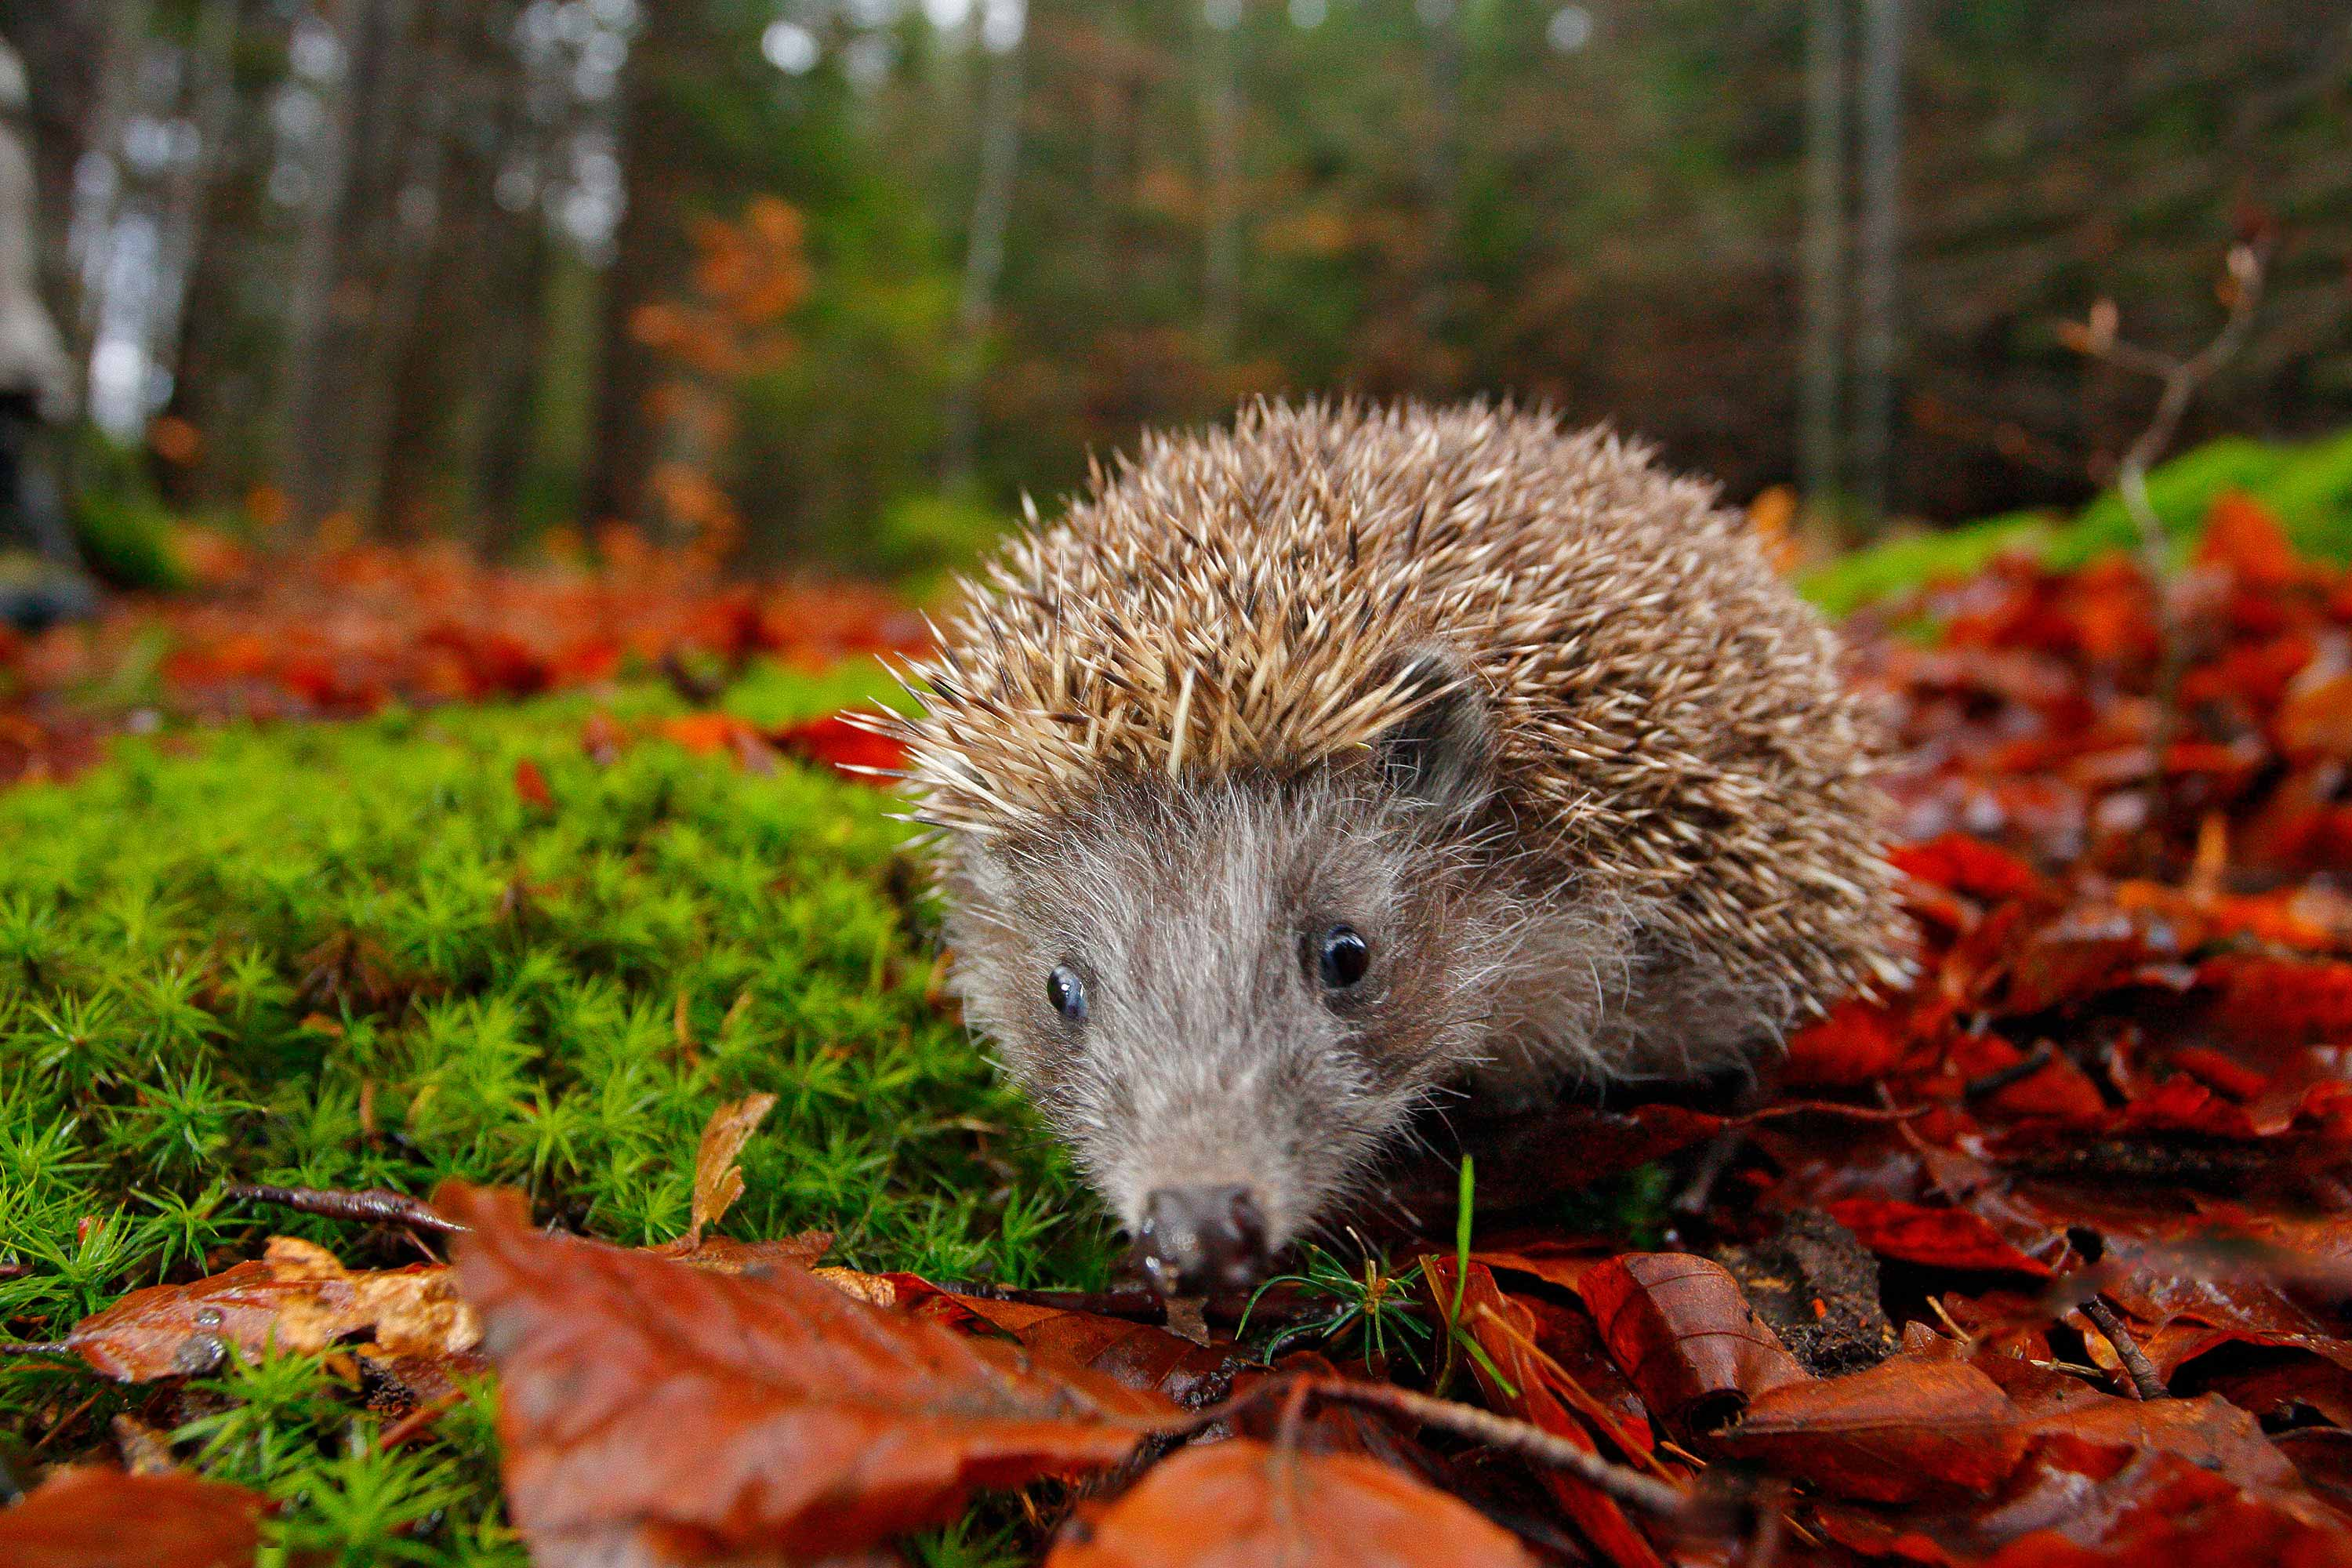 How To Look After A Hedgehog In Your Garden